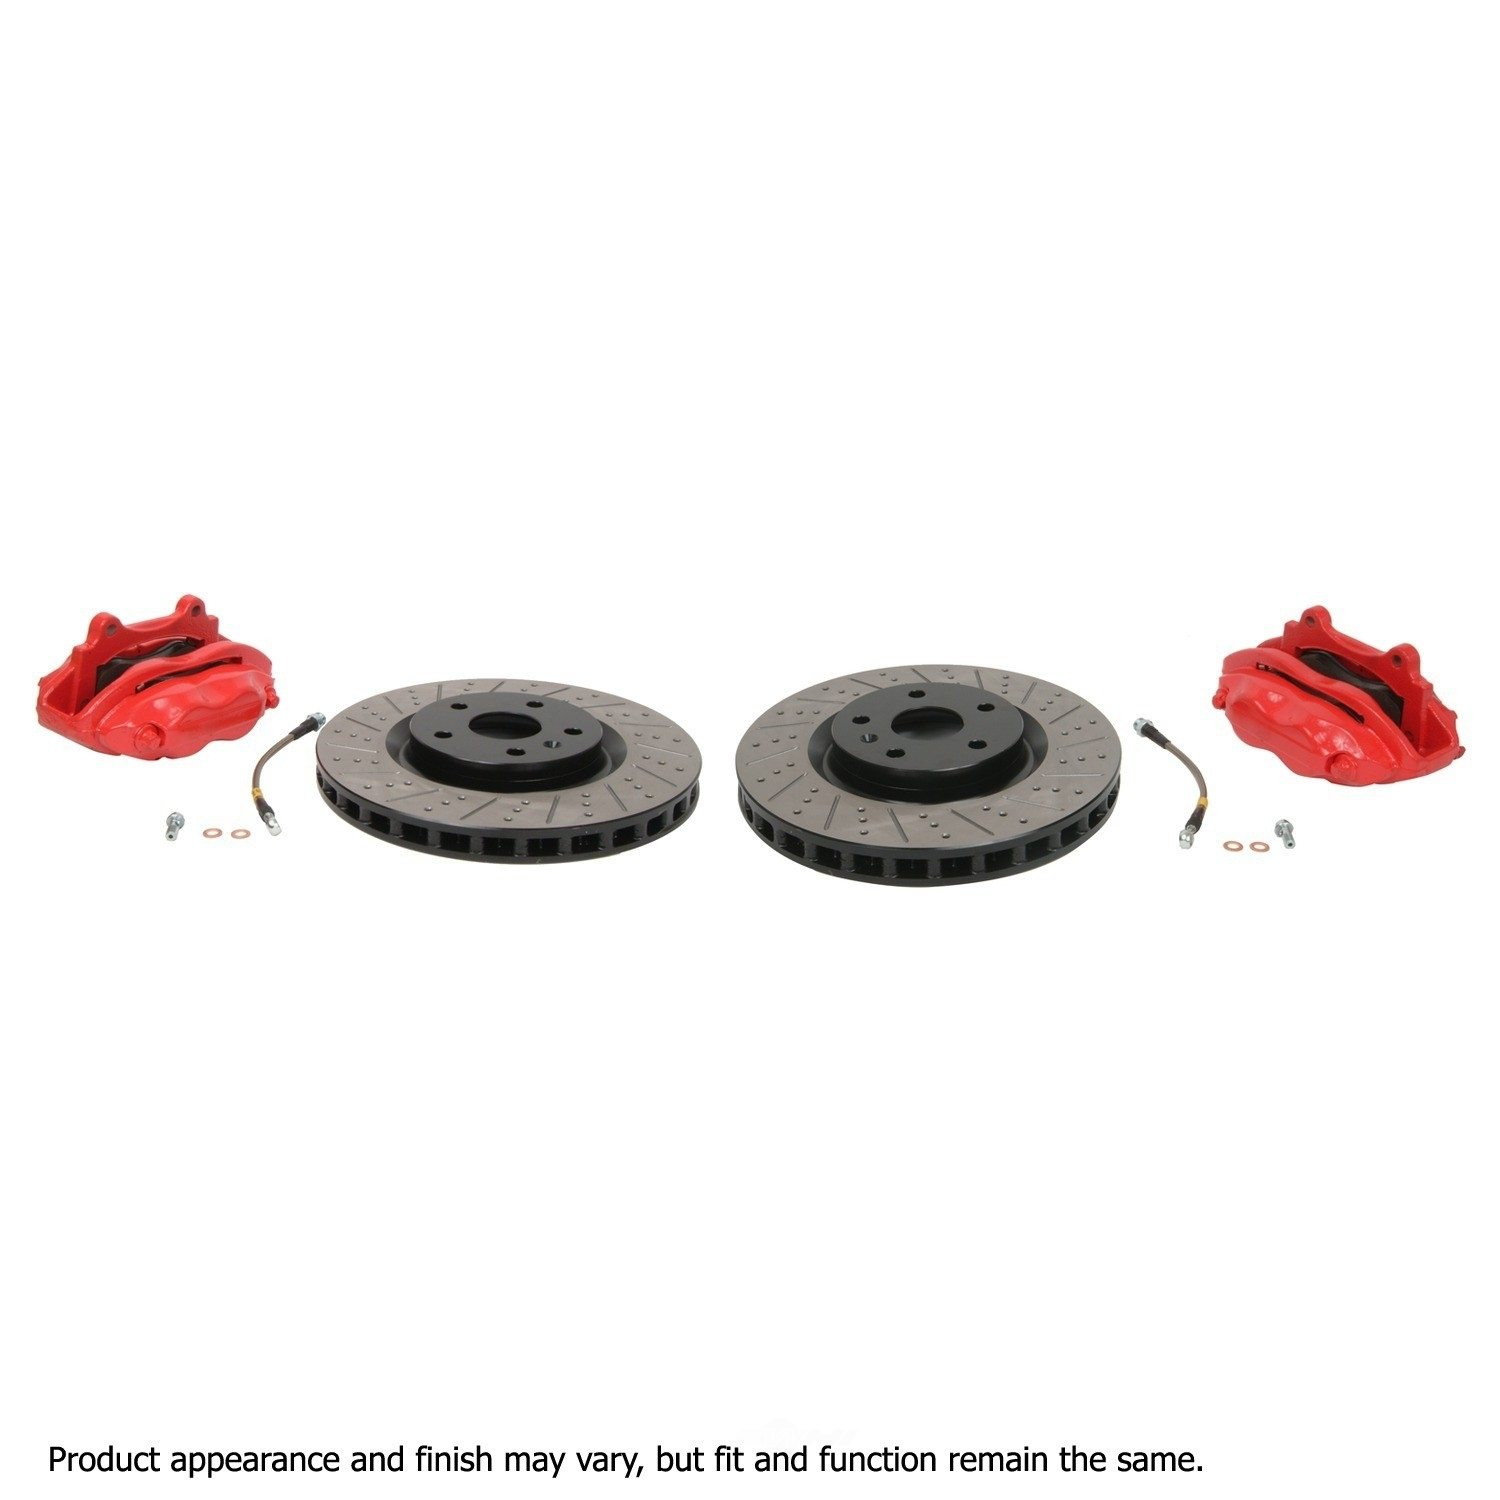 CARDONE/A-1 CARDONE - Reman Performance Brake Upgrade Kit (Front) - A1C 2B-9030XR